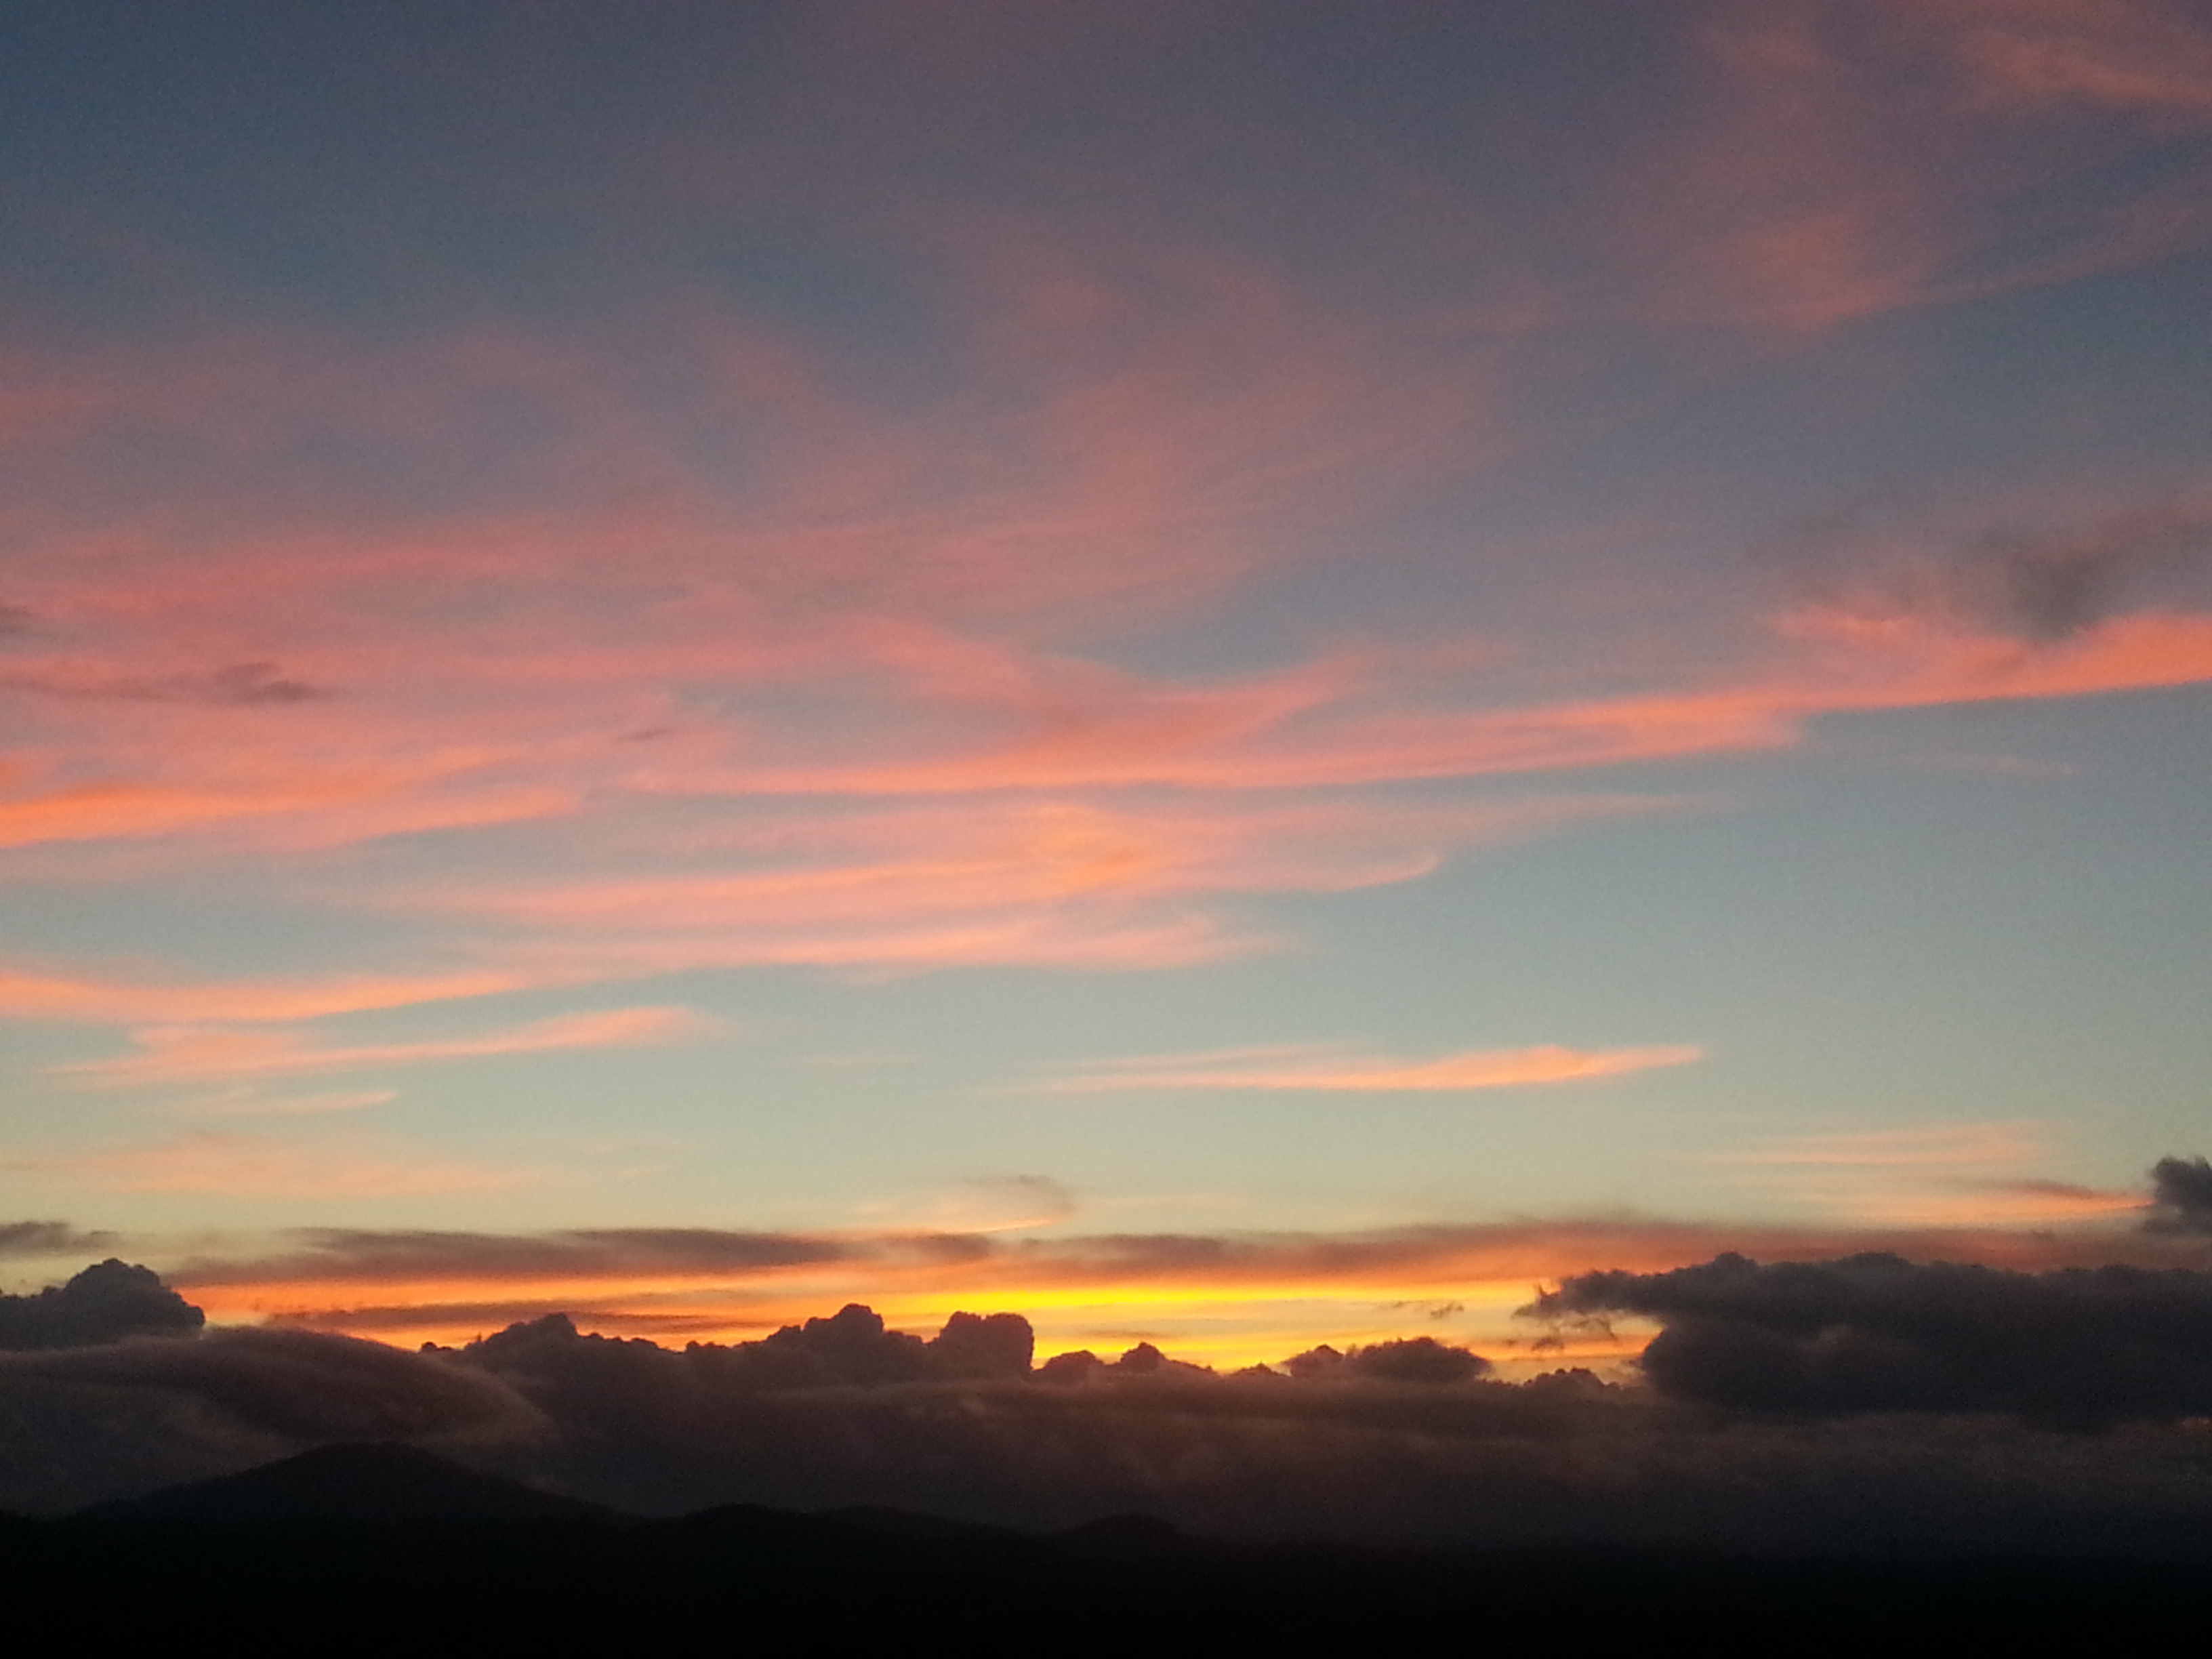 Pink, blue, yellow, orange, gray \u0026 black \u2013 a sky of many moods ...